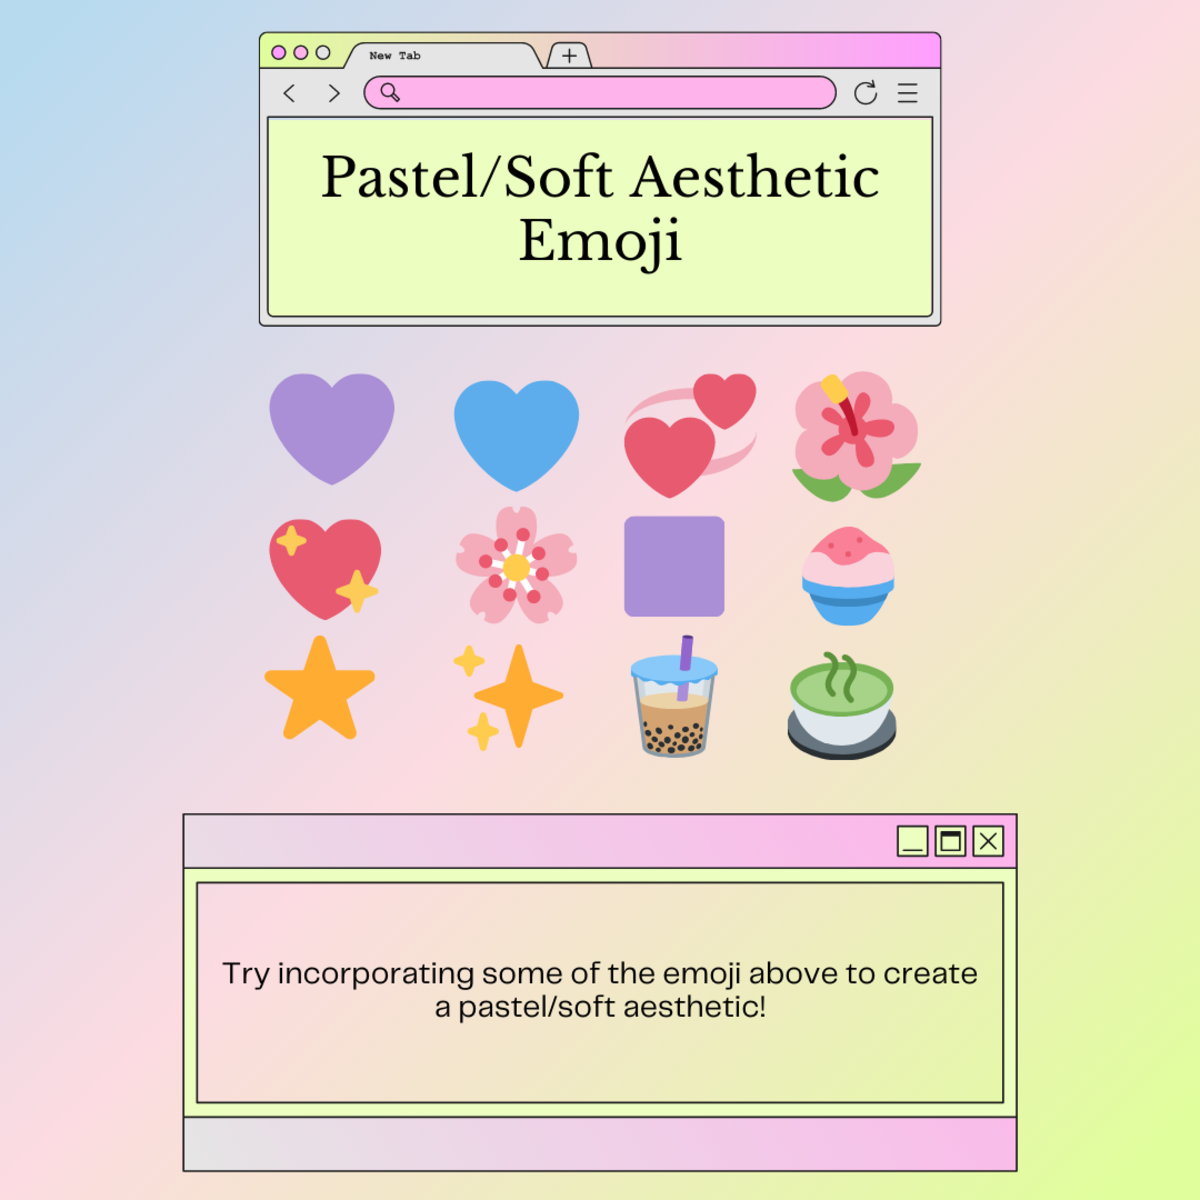 Here are some examples of emoji you could use to recreate the pastel or soft aesthetic!